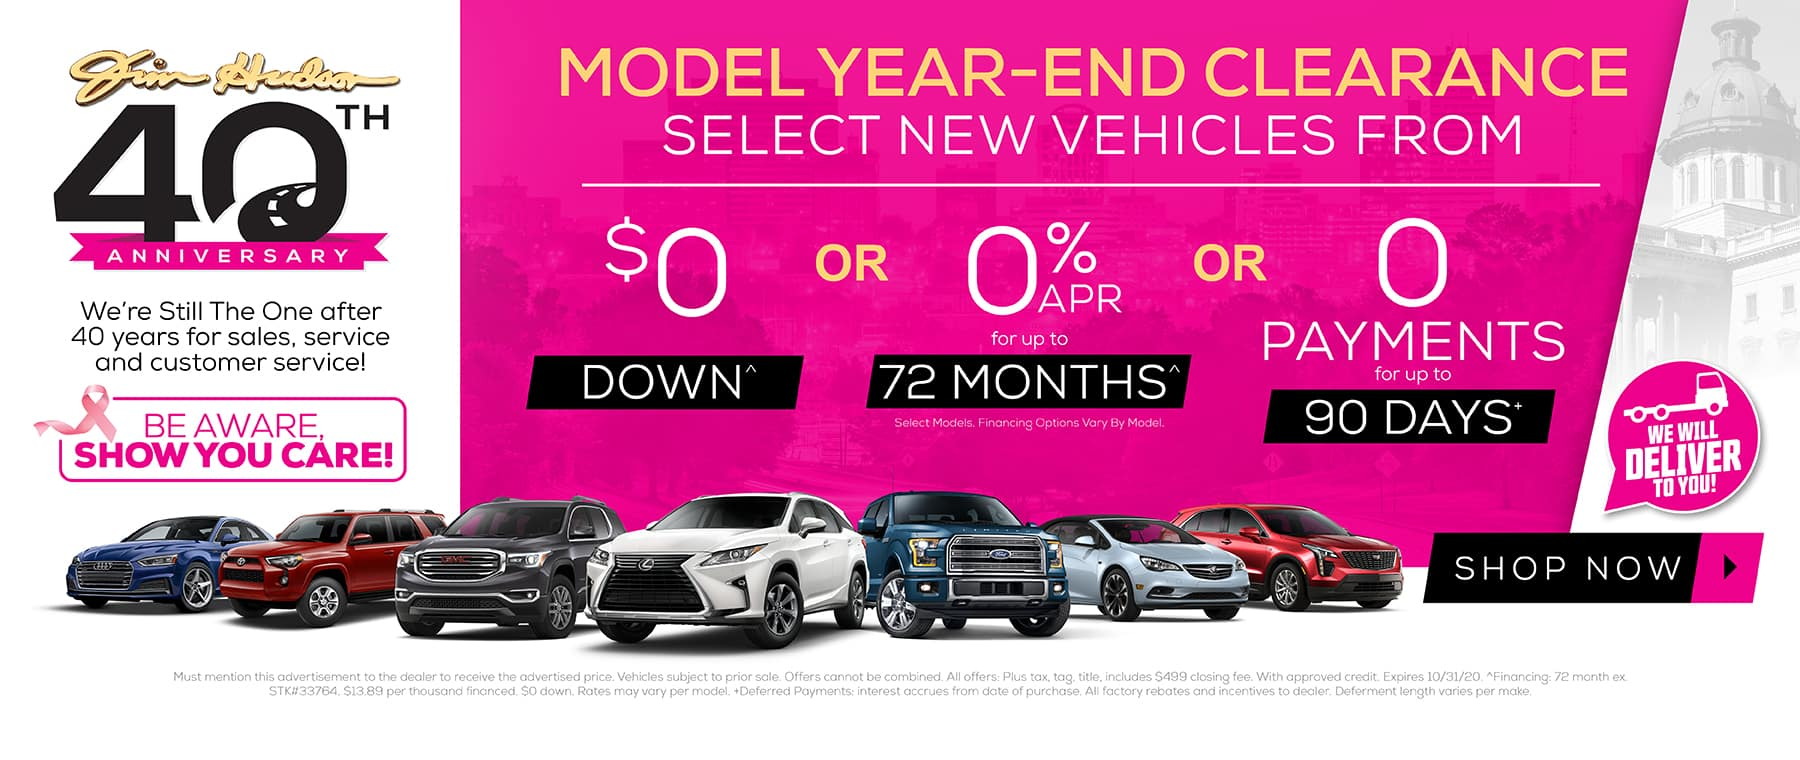 0% APR Model Year-End Clearance